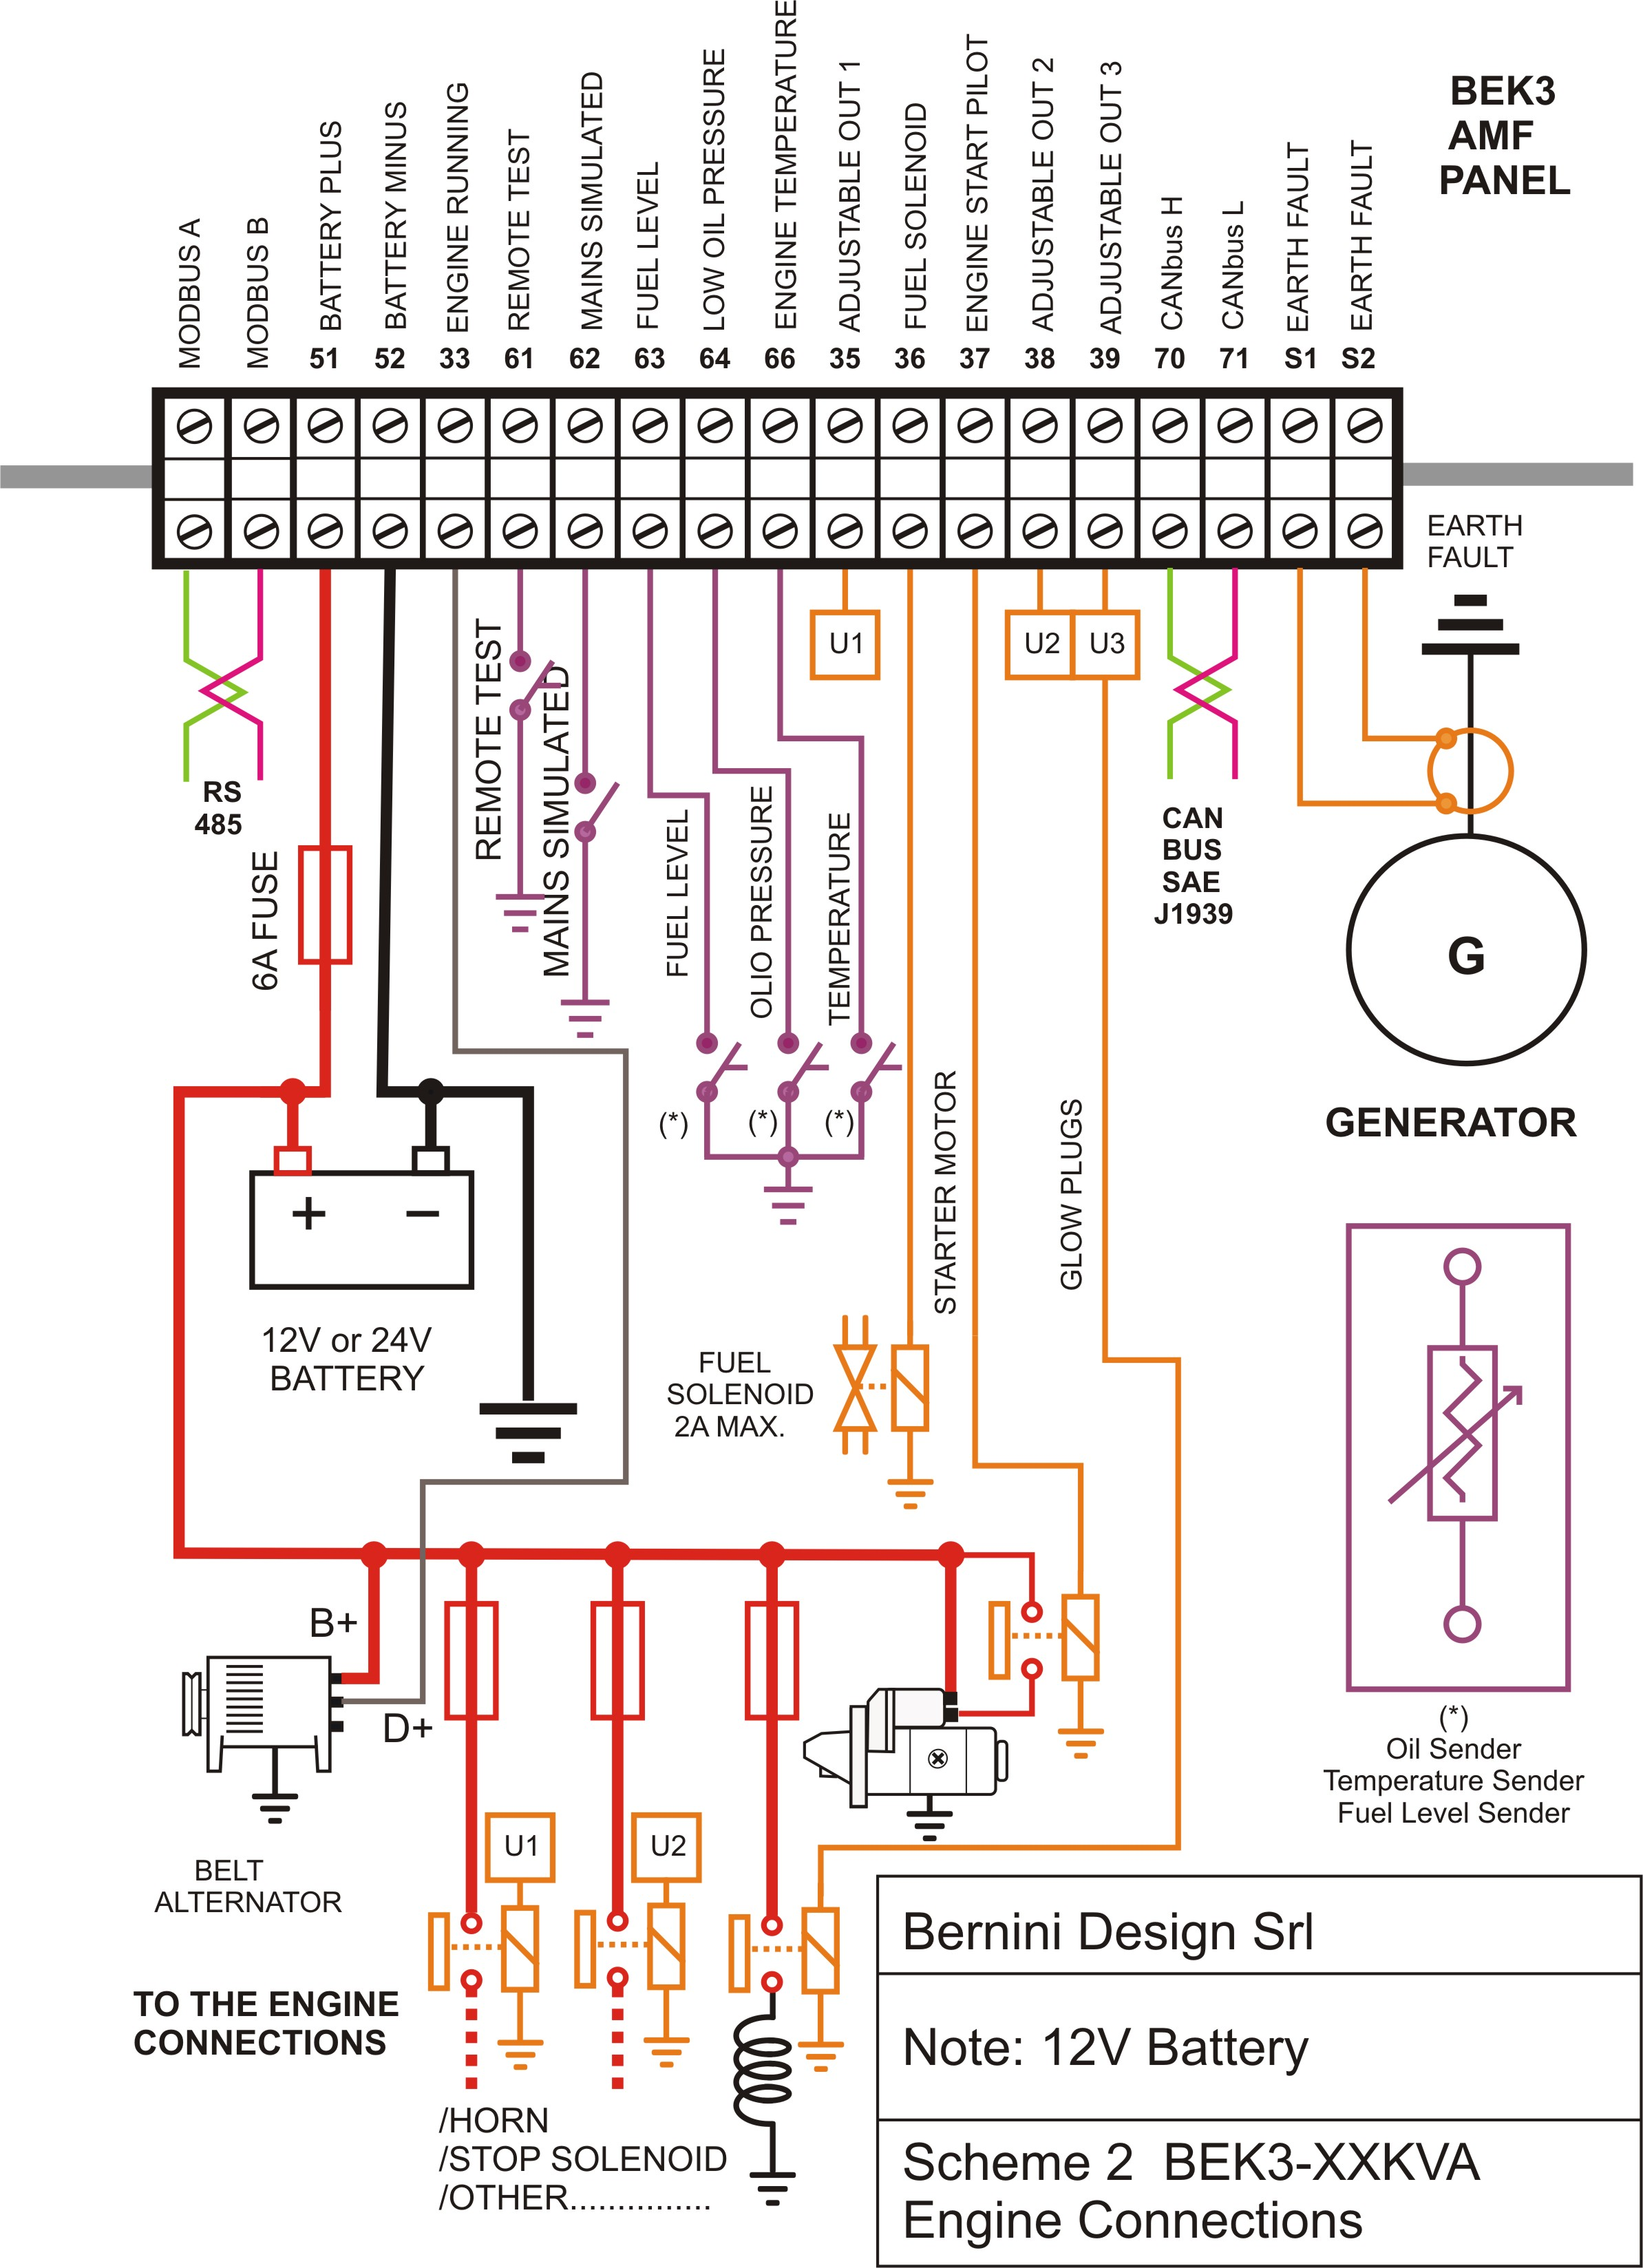 Amf control panel circuit diagram pdf genset controller amf control panel circuit diagram pdf engine connections freerunsca Image collections